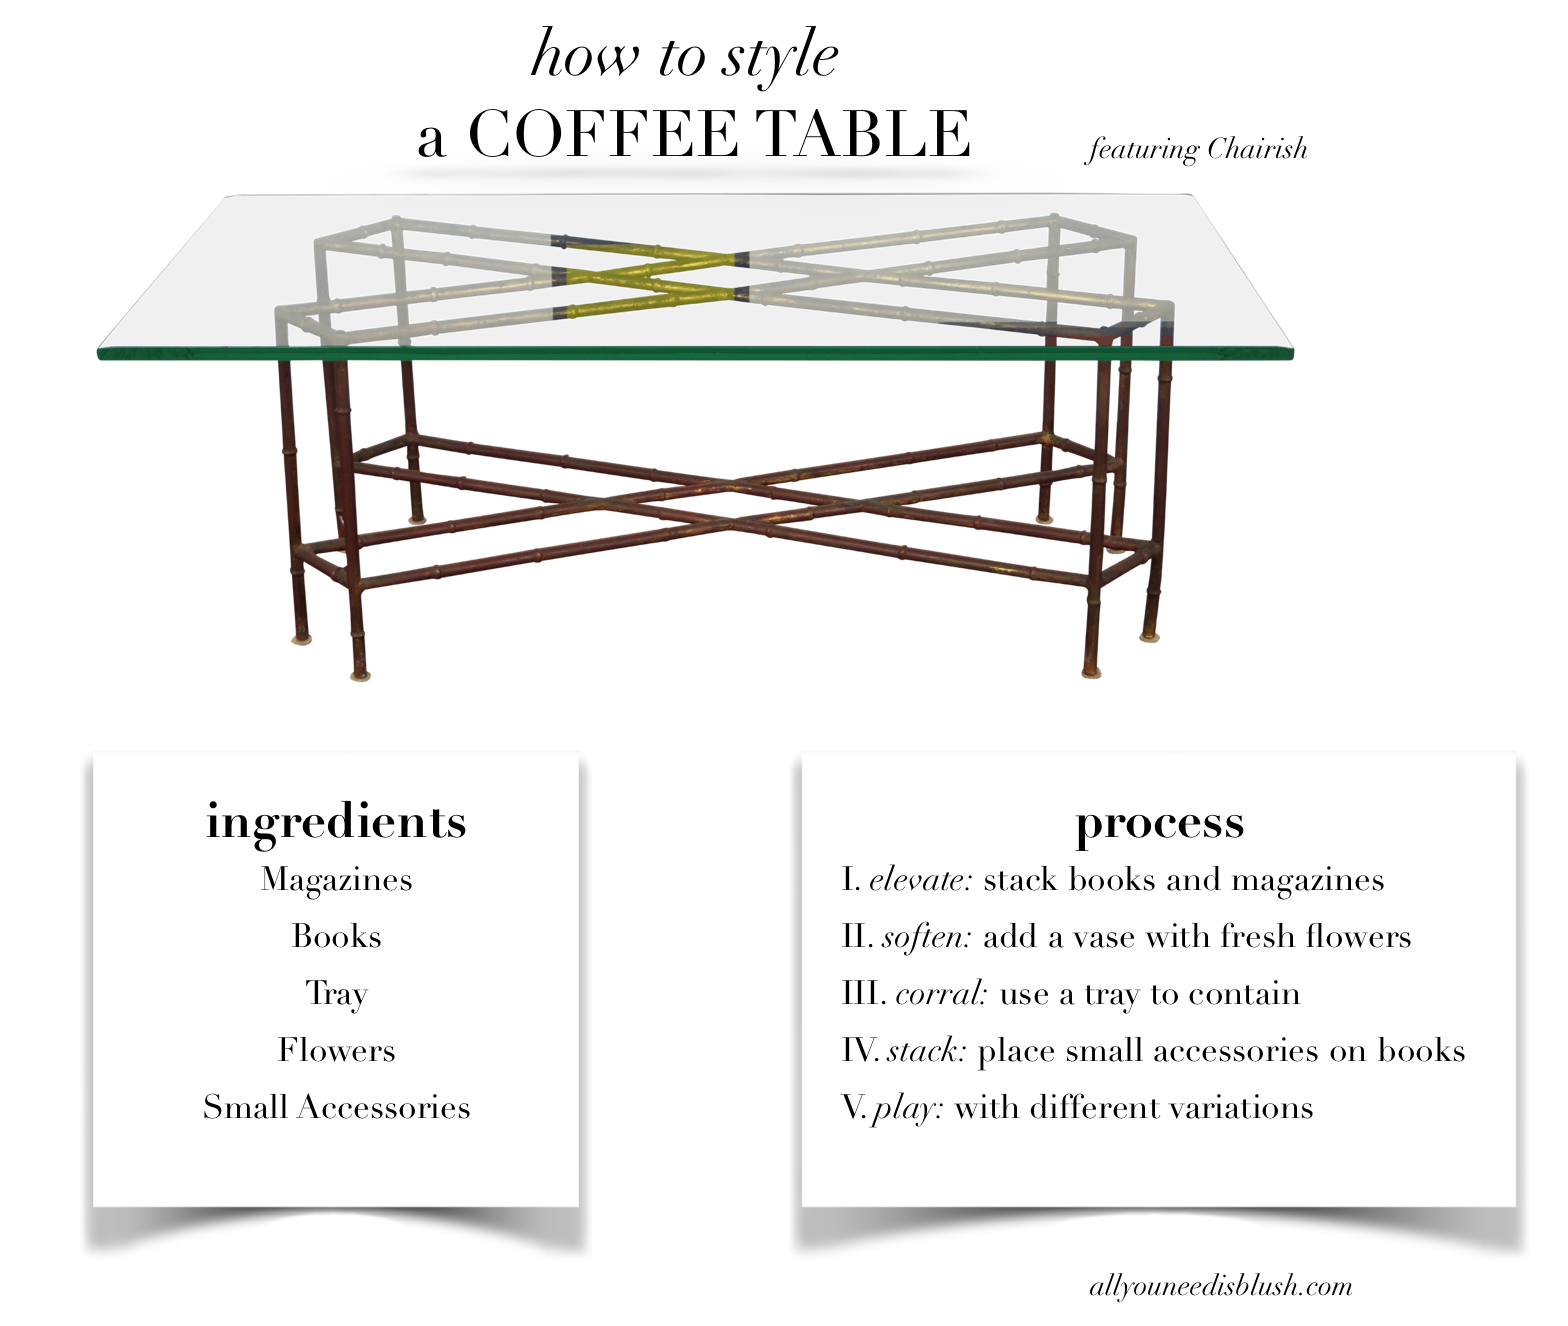 Coffee Table Crib Sheet